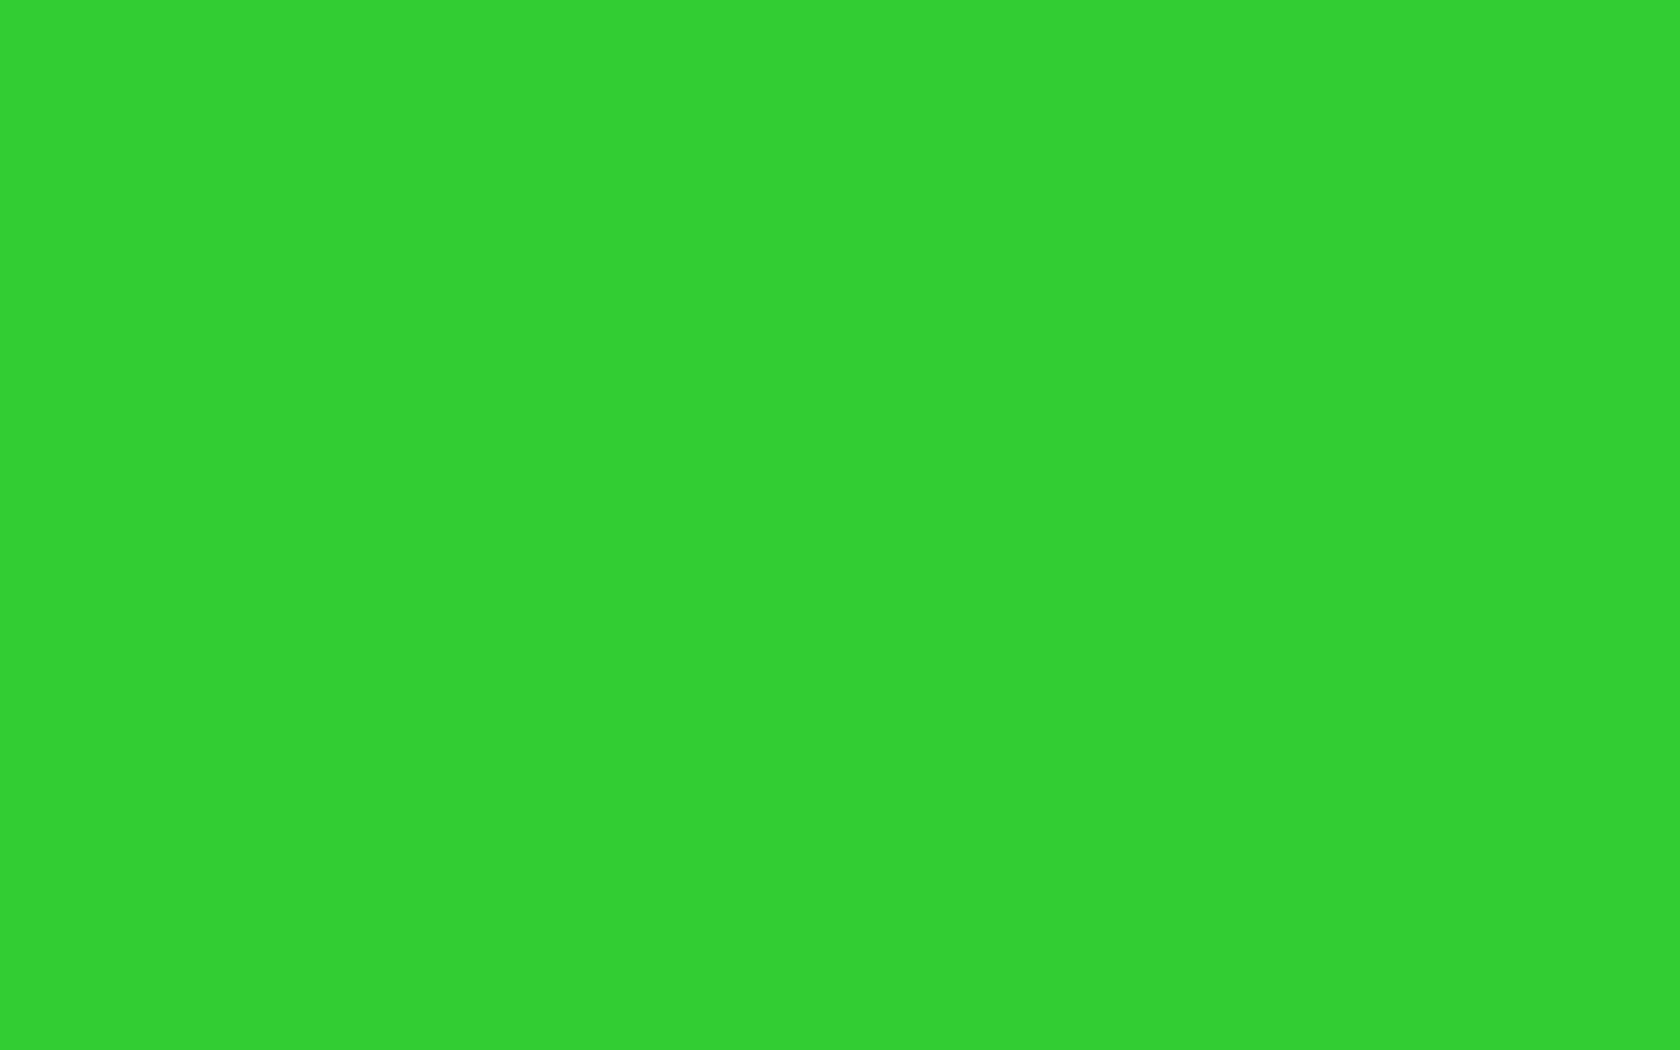 1680x1050 Lime Green Solid Color Background